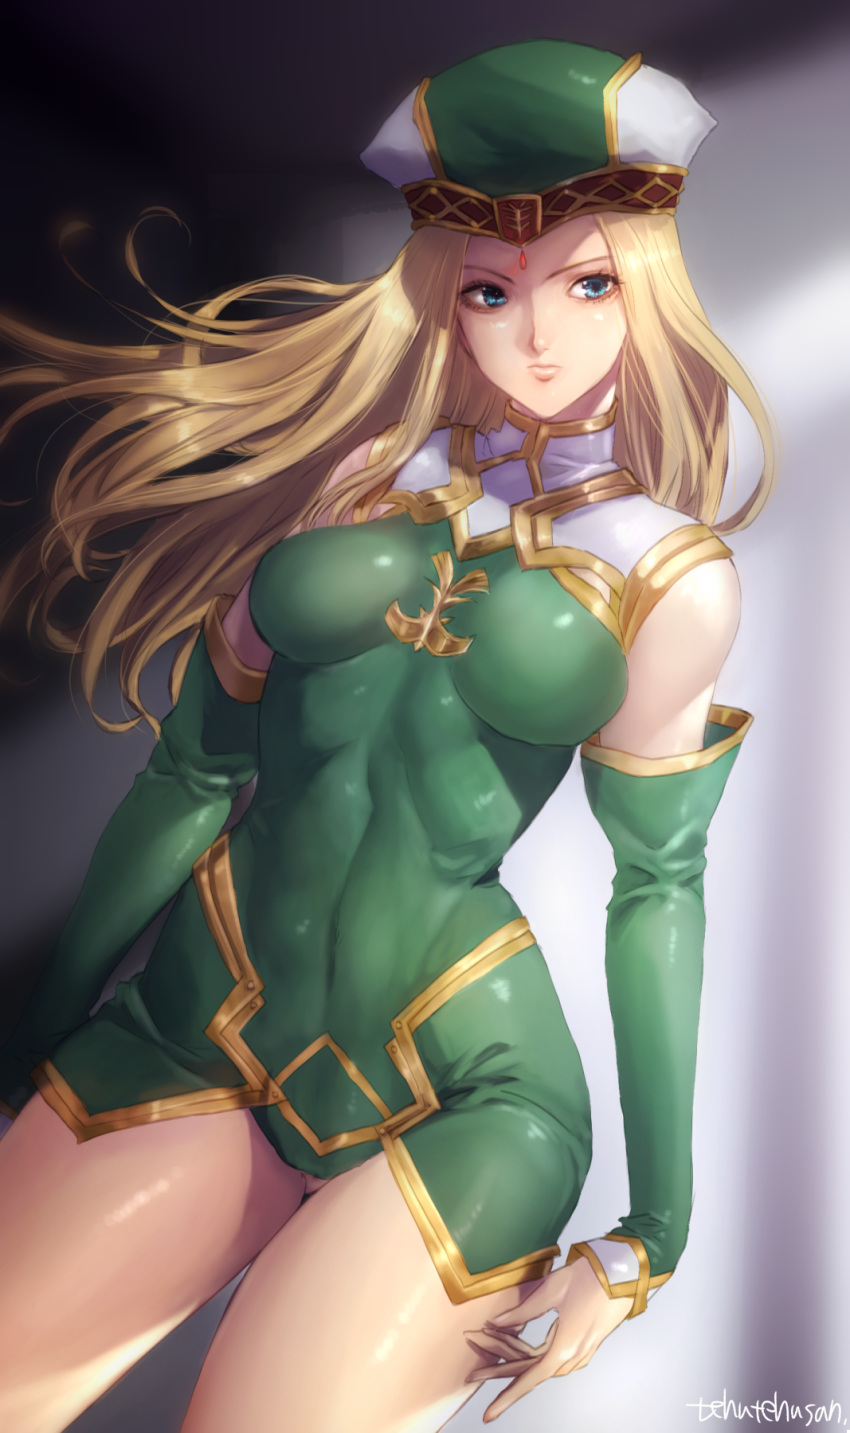 1girl artist_name blonde_hair blue_eyes breasts closed_mouth commentary_request covered_navel detached_sleeves dress erect_nipples freya_(valkyrie_profile) green_dress hat highres legs long_hair looking_to_the_side medium_breasts mellowd short_dress skin_tight thighs valkyrie_profile